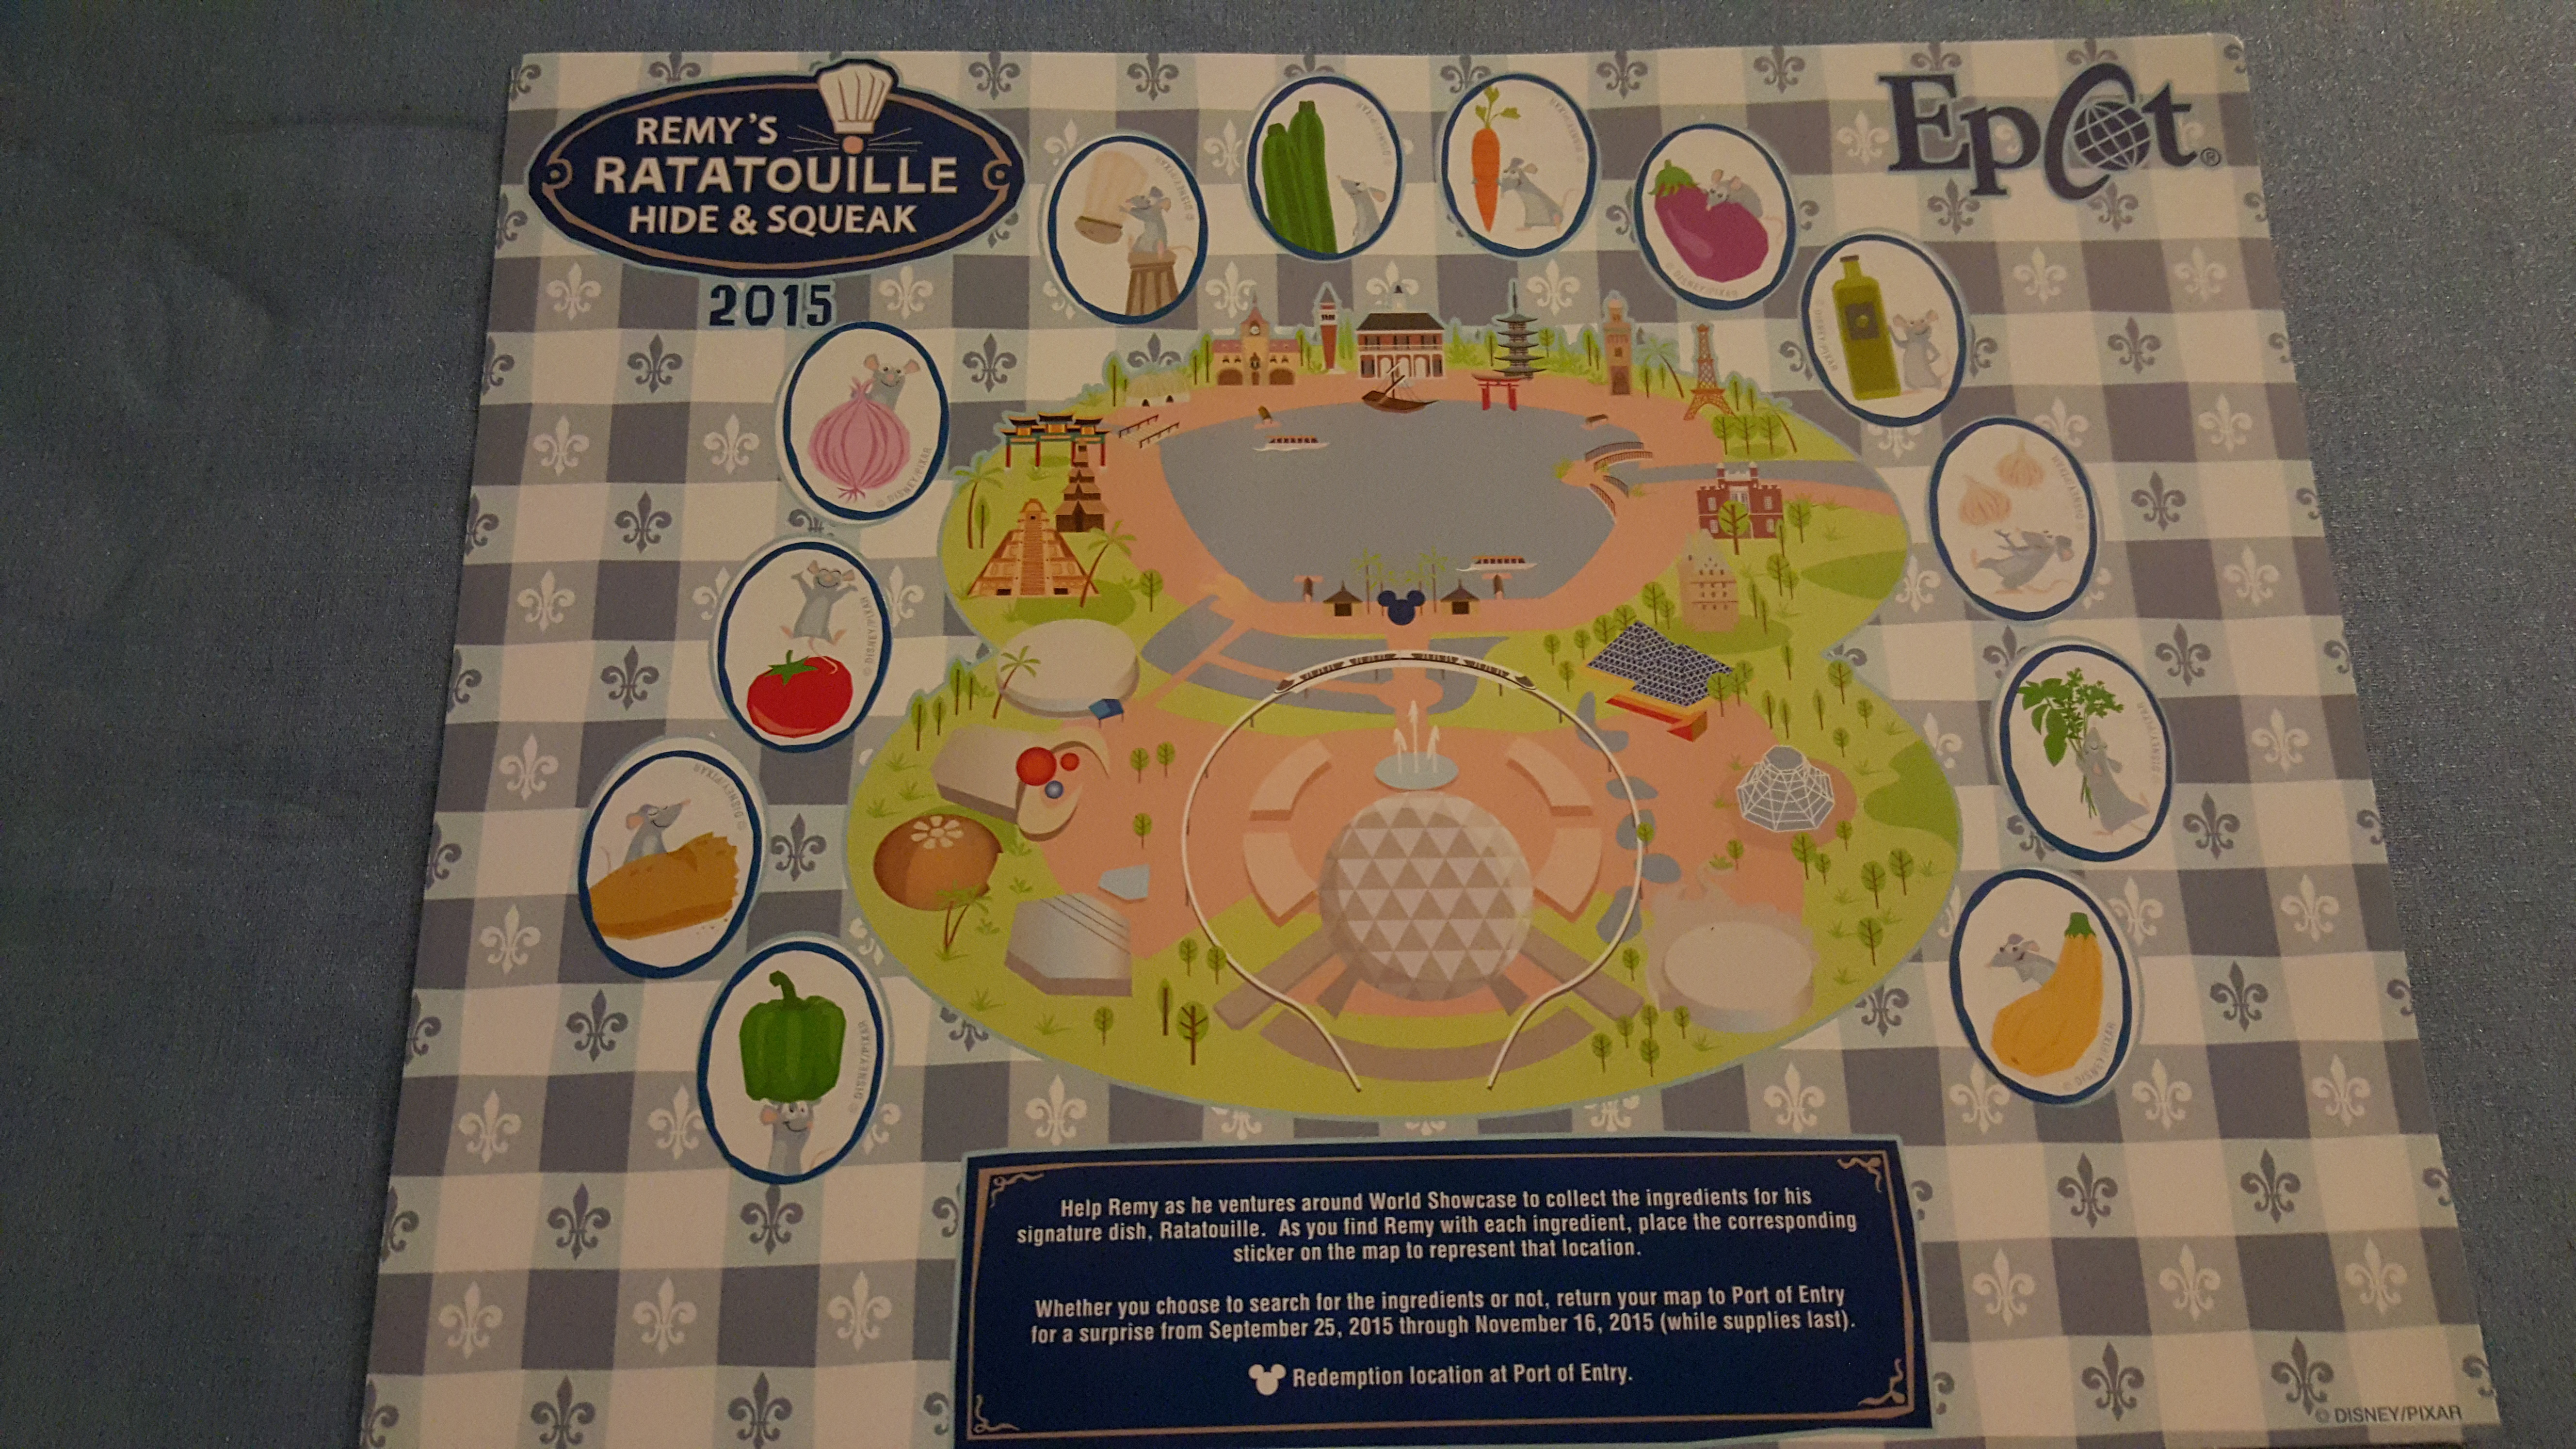 Remy's Ratatouille Hide & Squeak Is Fun For All Ages